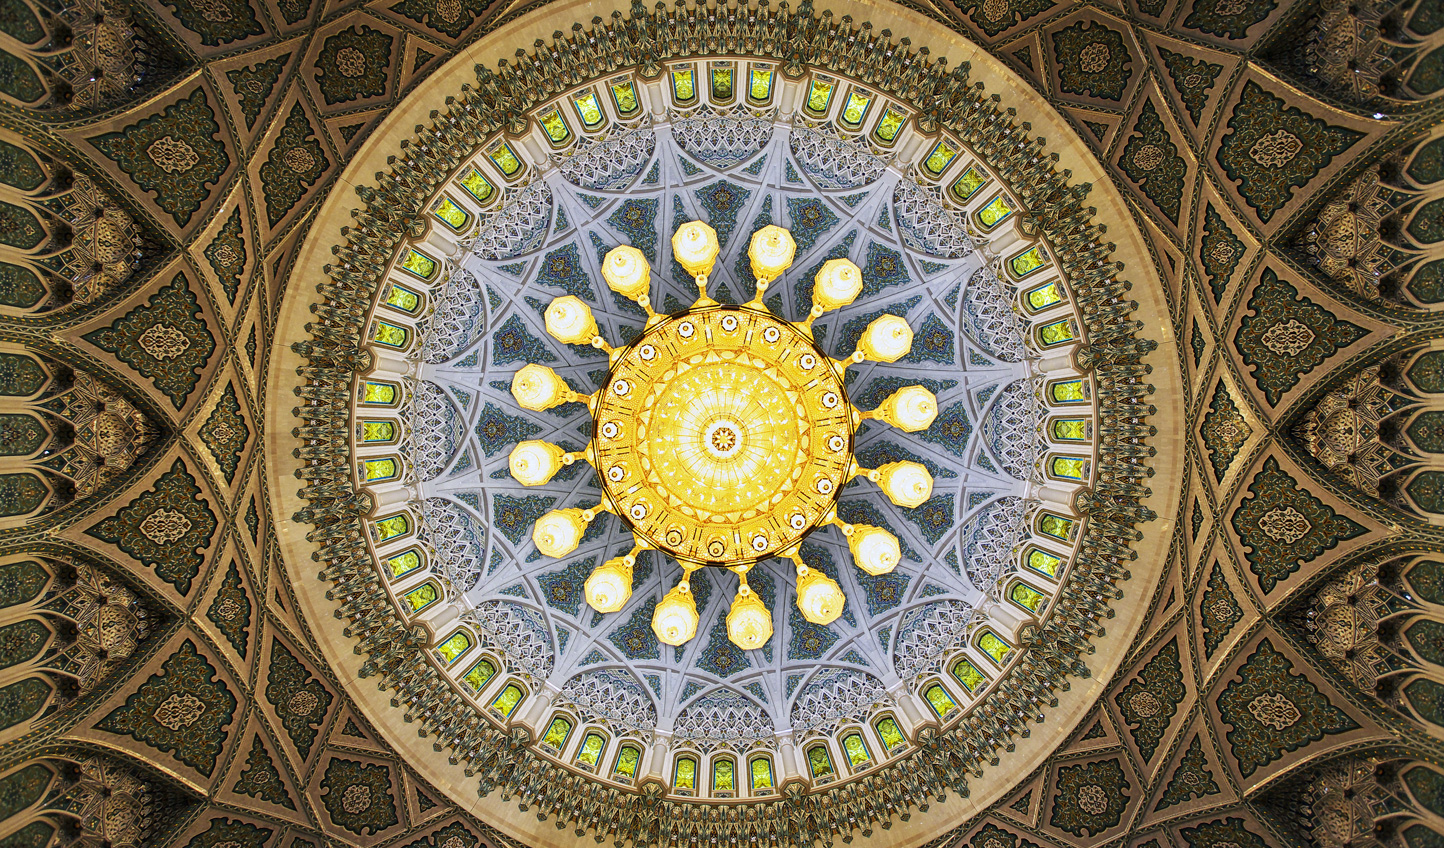 Be sure to turn your gaze upwards when you walk into the Sultan Qaboos Grand Mosque